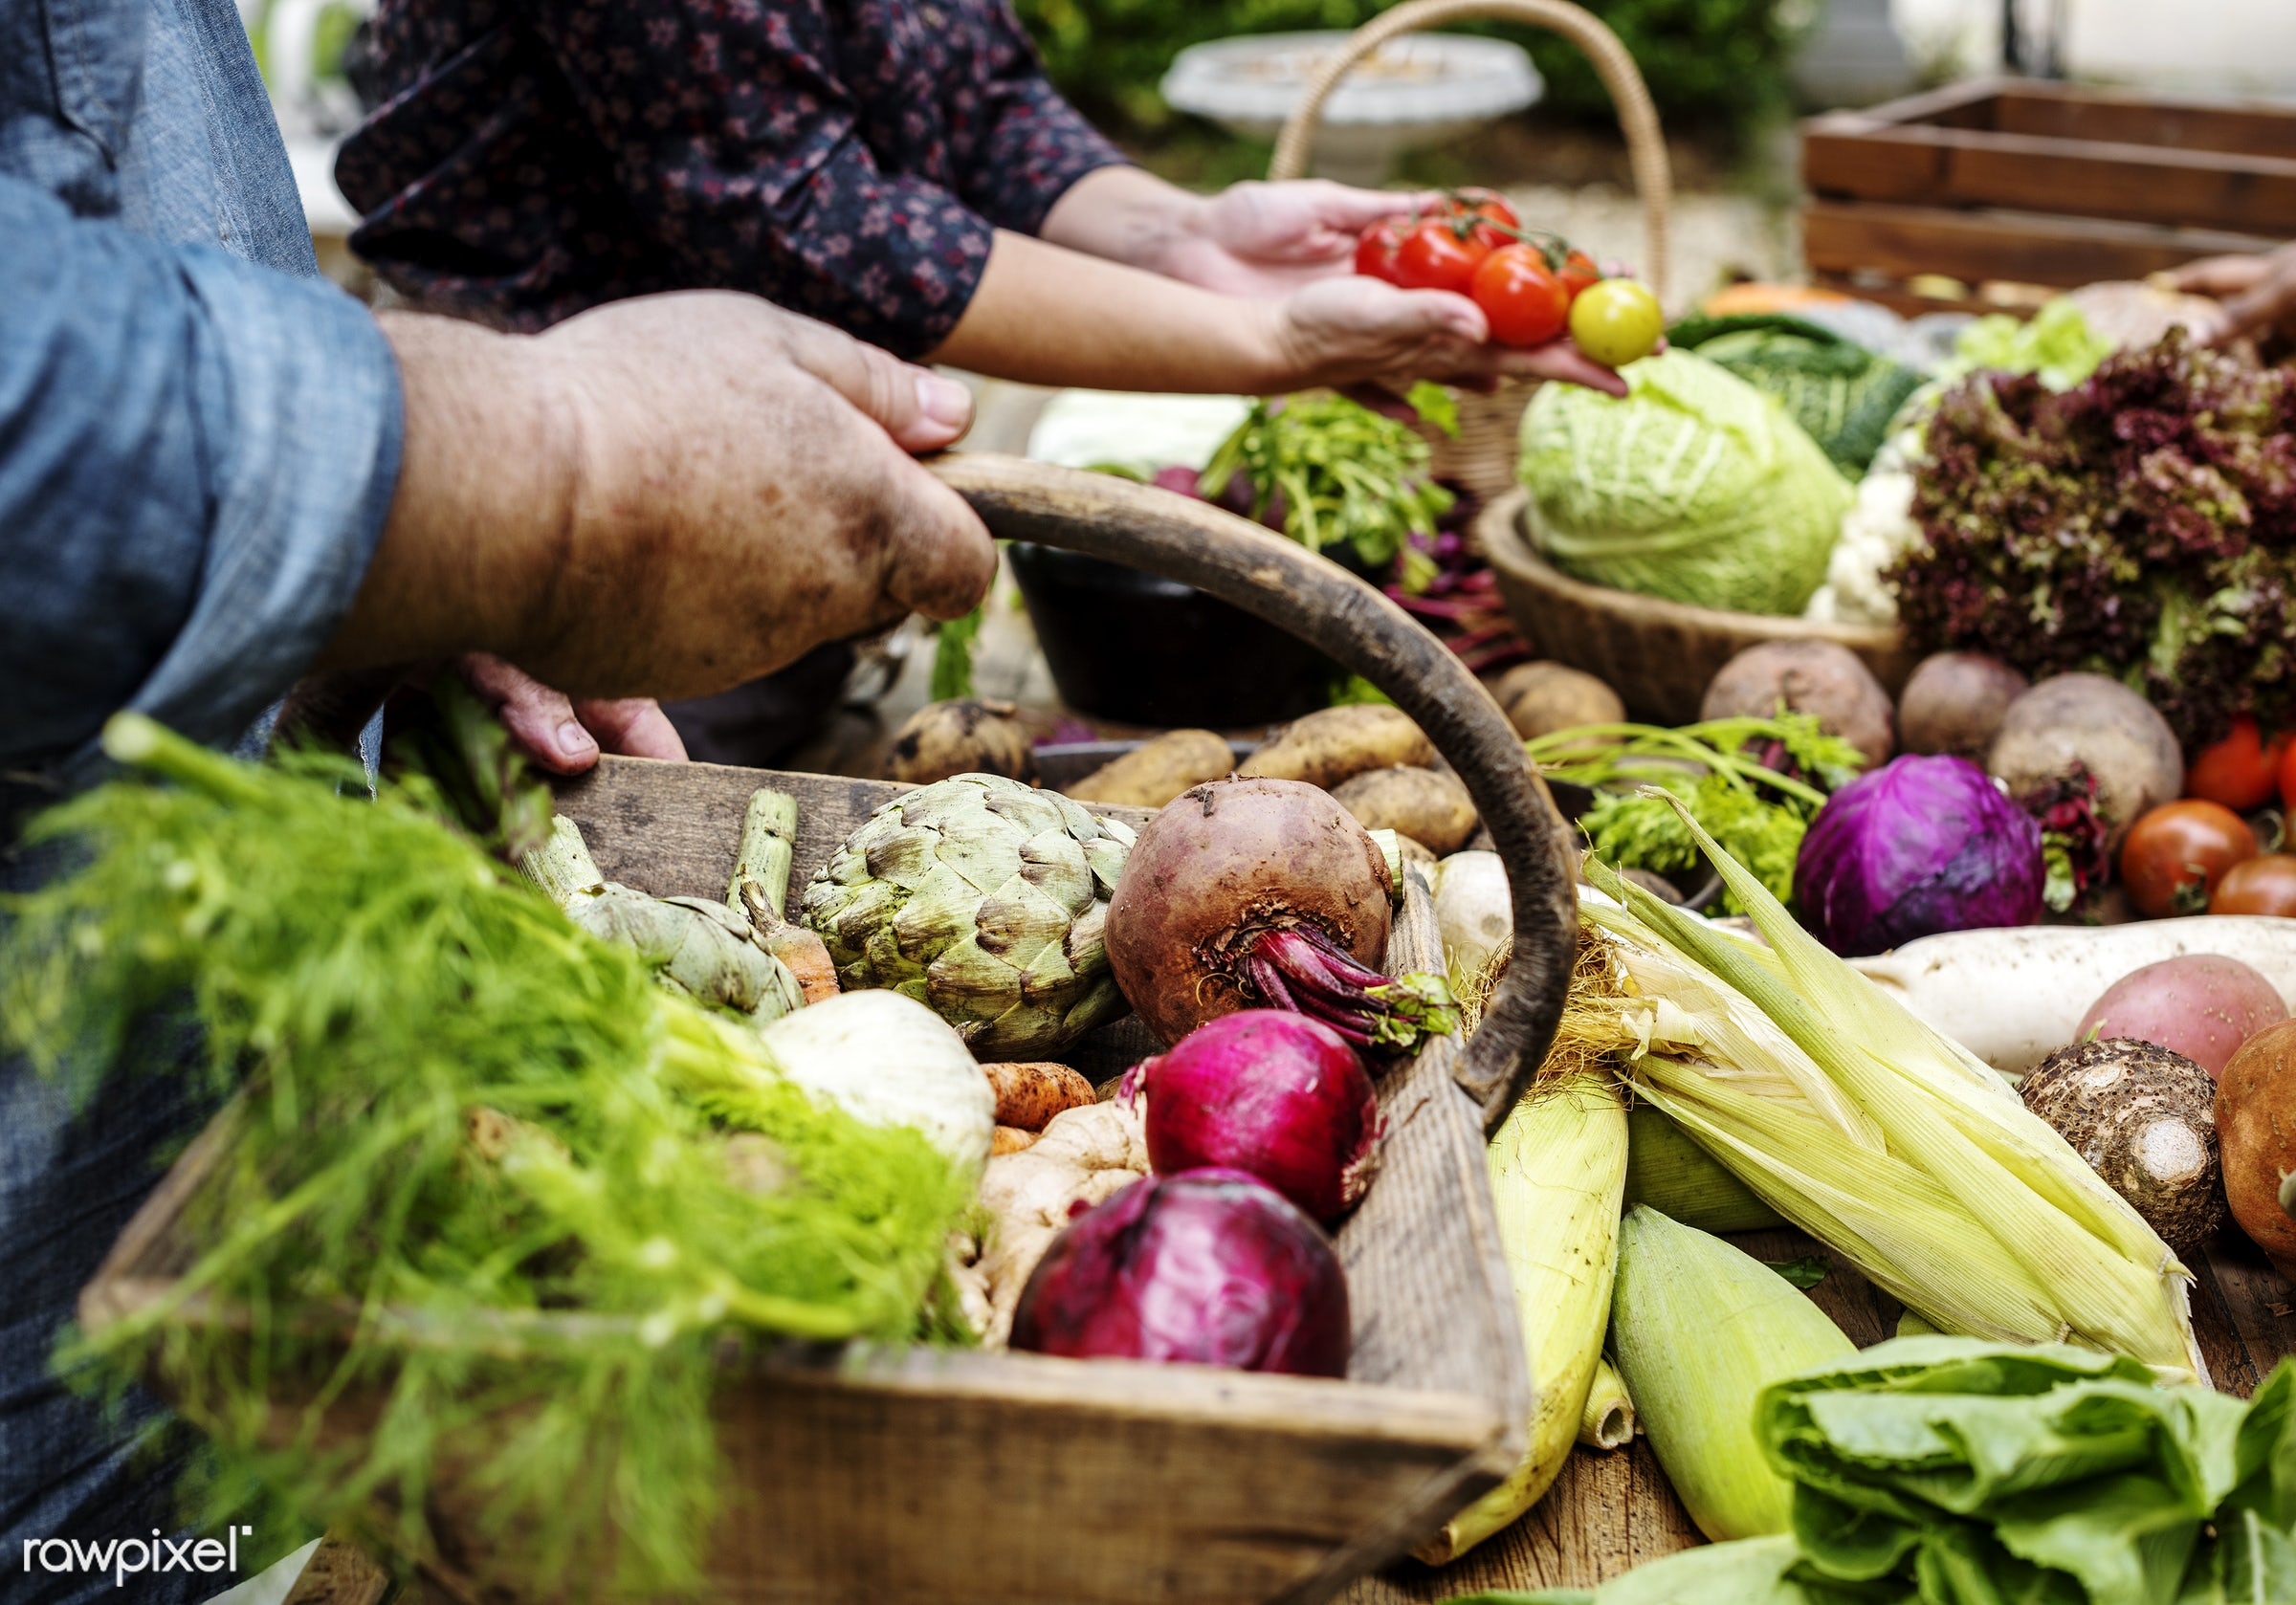 raw, diverse, herbs, farm, ingredients, nature, farmer, fresh, hands, products, agriculture, variety, organic, market, food...